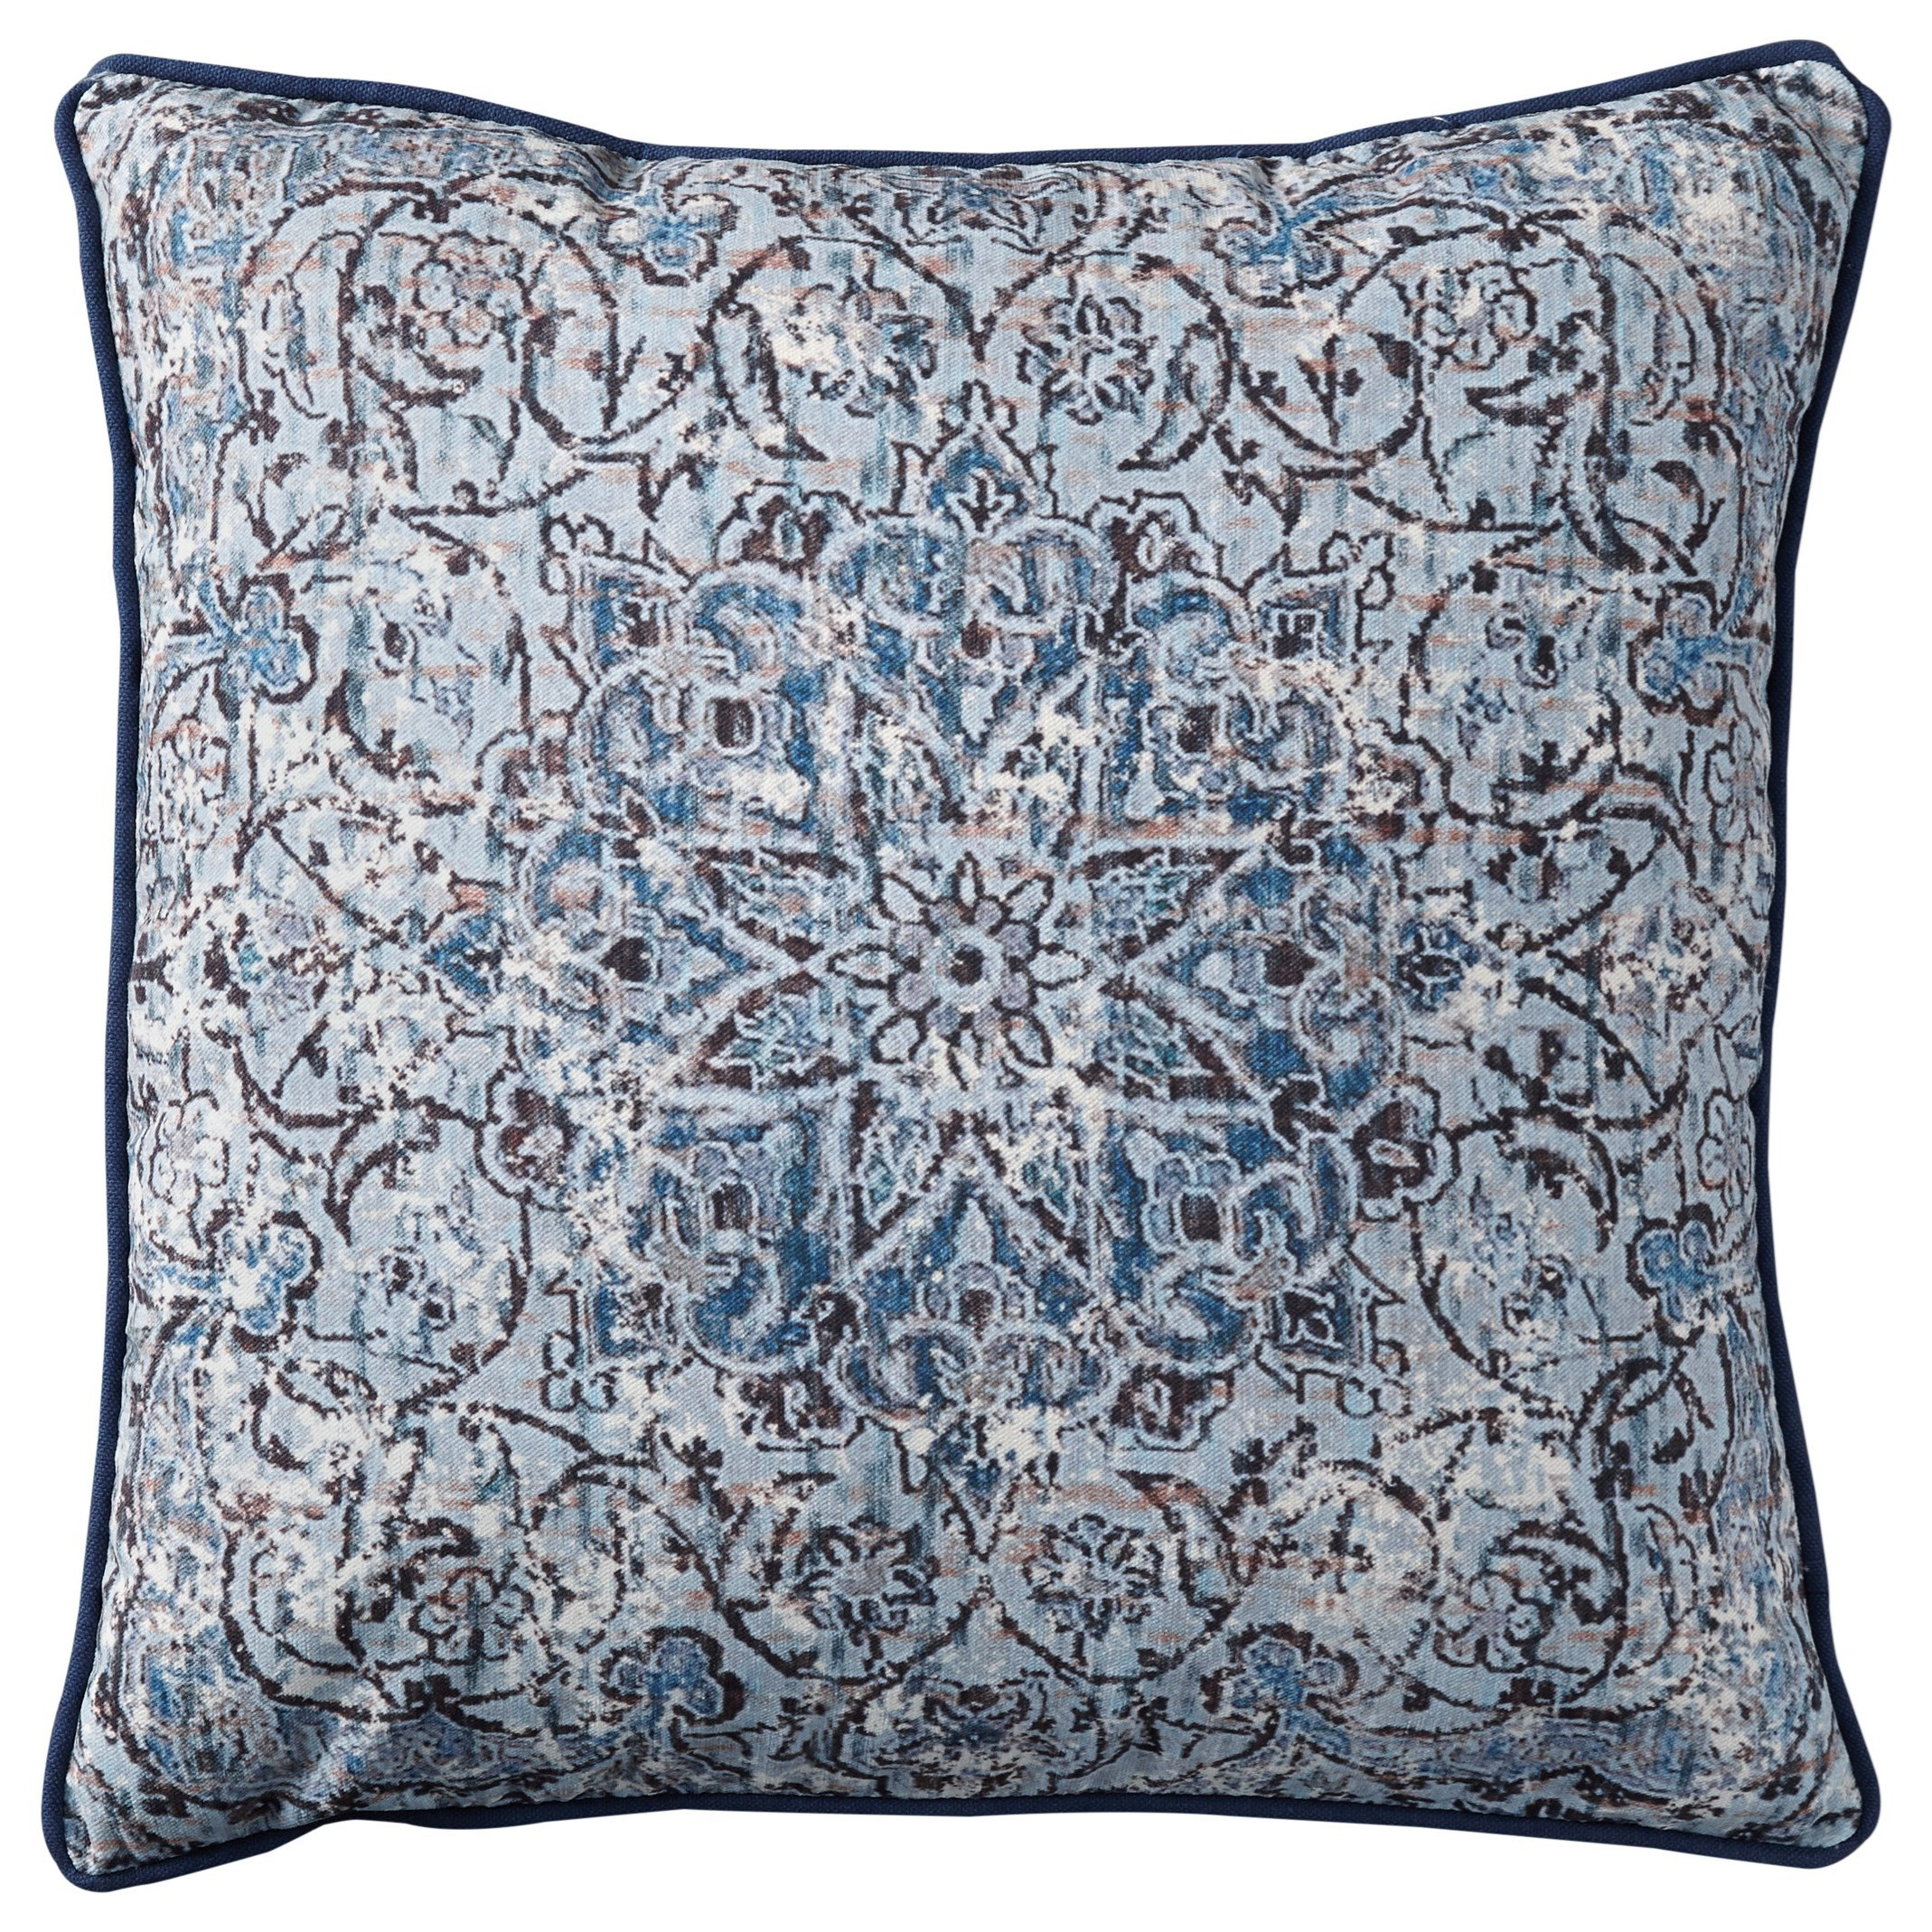 Signature Design by Ashley Pillows Mariah Blue Pillow - Item Number: A1000779P